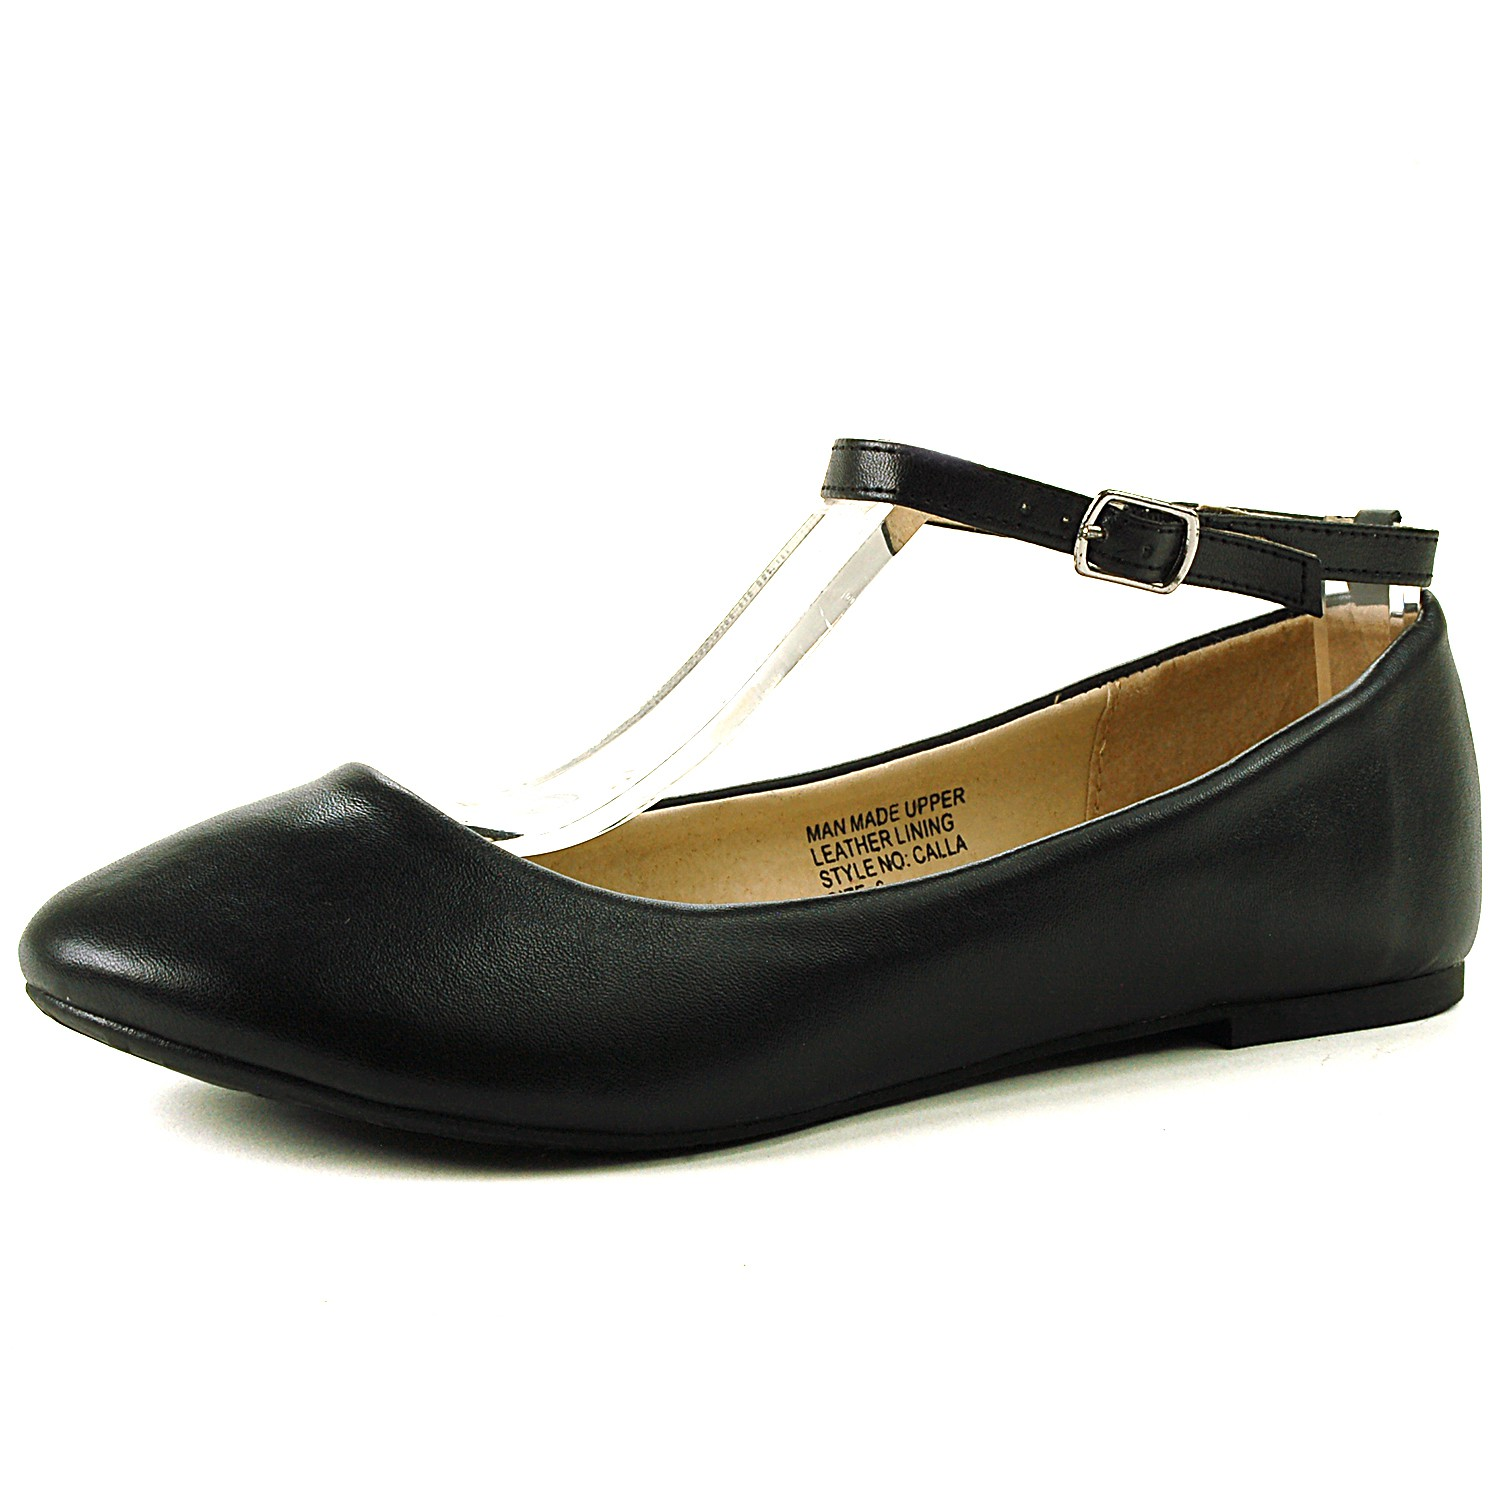 Ankle Strap Ballet Flats Sale: Save Up to 40% Off! Shop thrushop-9b4y6tny.ga's huge selection of Ankle Strap Ballet Flats - Over 10 styles available. FREE Shipping & Exchanges, and a % price guarantee!